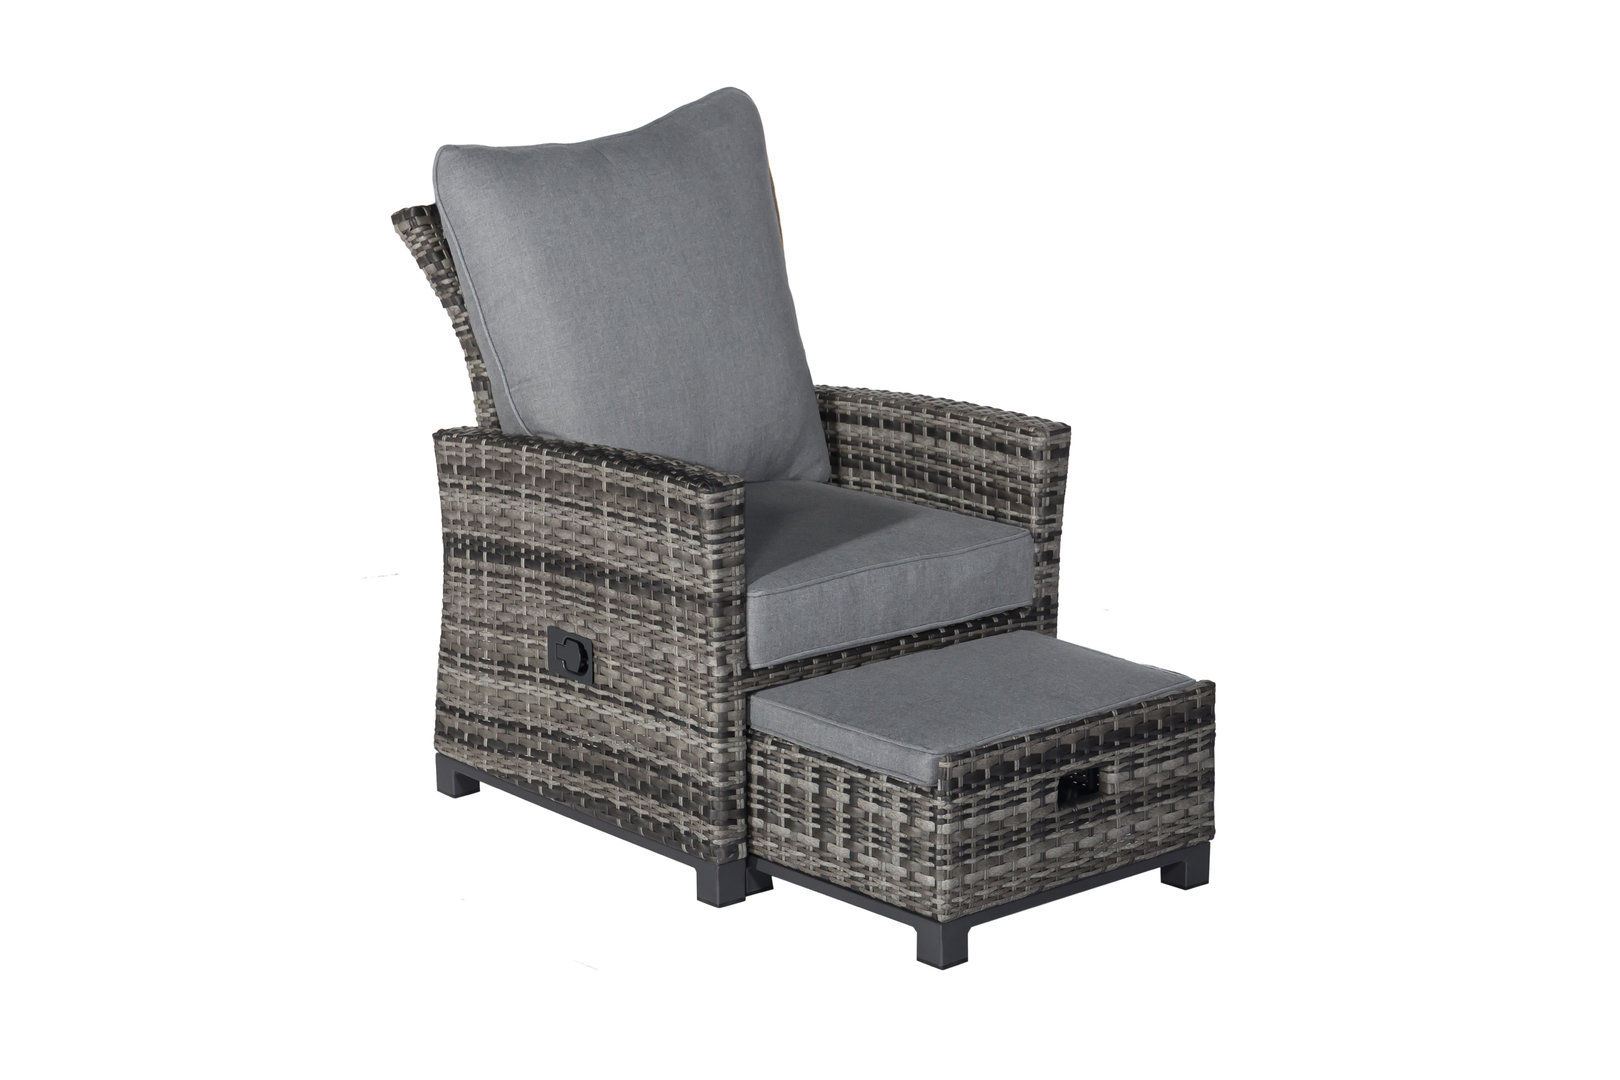 ***Aktion***Lounge Sessel Havanna Deluxe Moon Grey stufenlos verstellbare Rückenlehne & Fußhocker